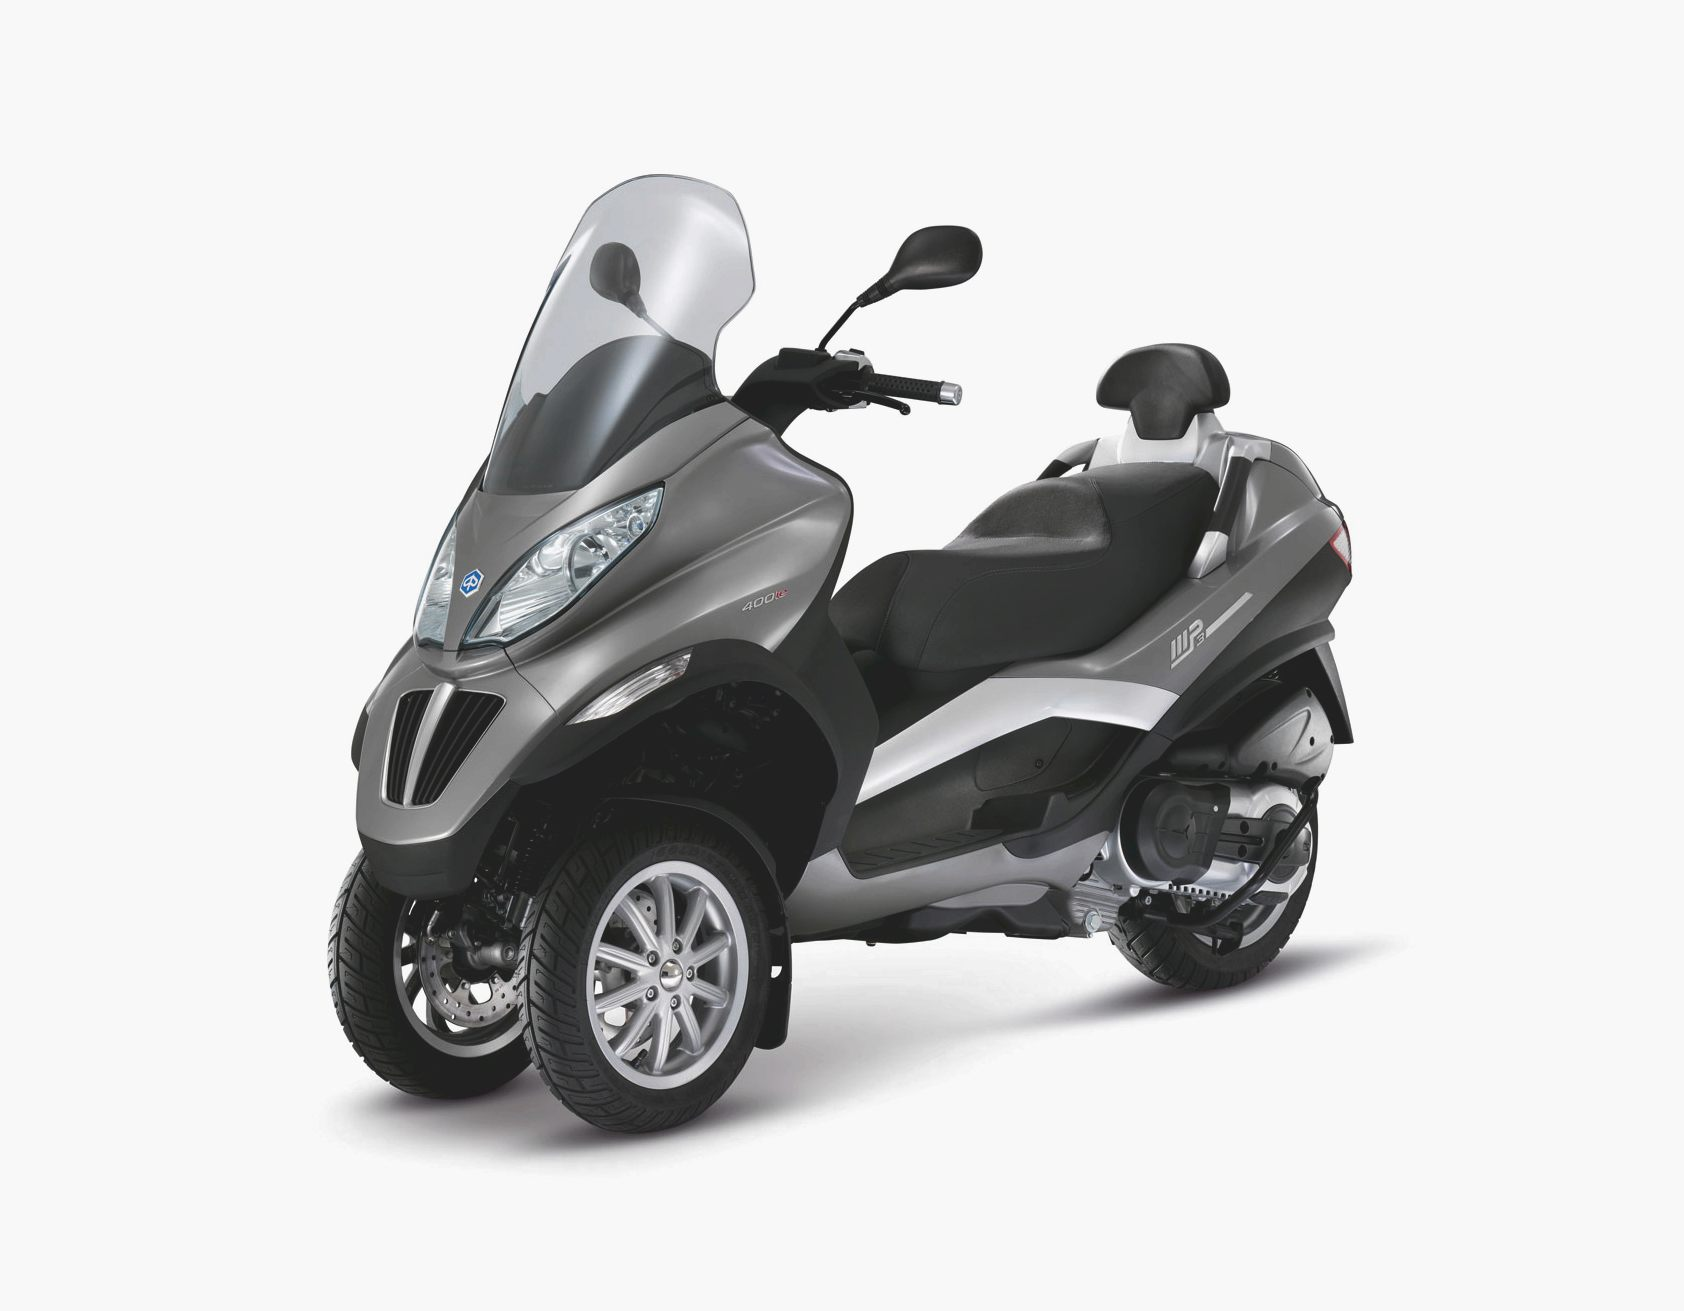 2012 piaggio mp3 touring 500 sport pics specs and. Black Bedroom Furniture Sets. Home Design Ideas